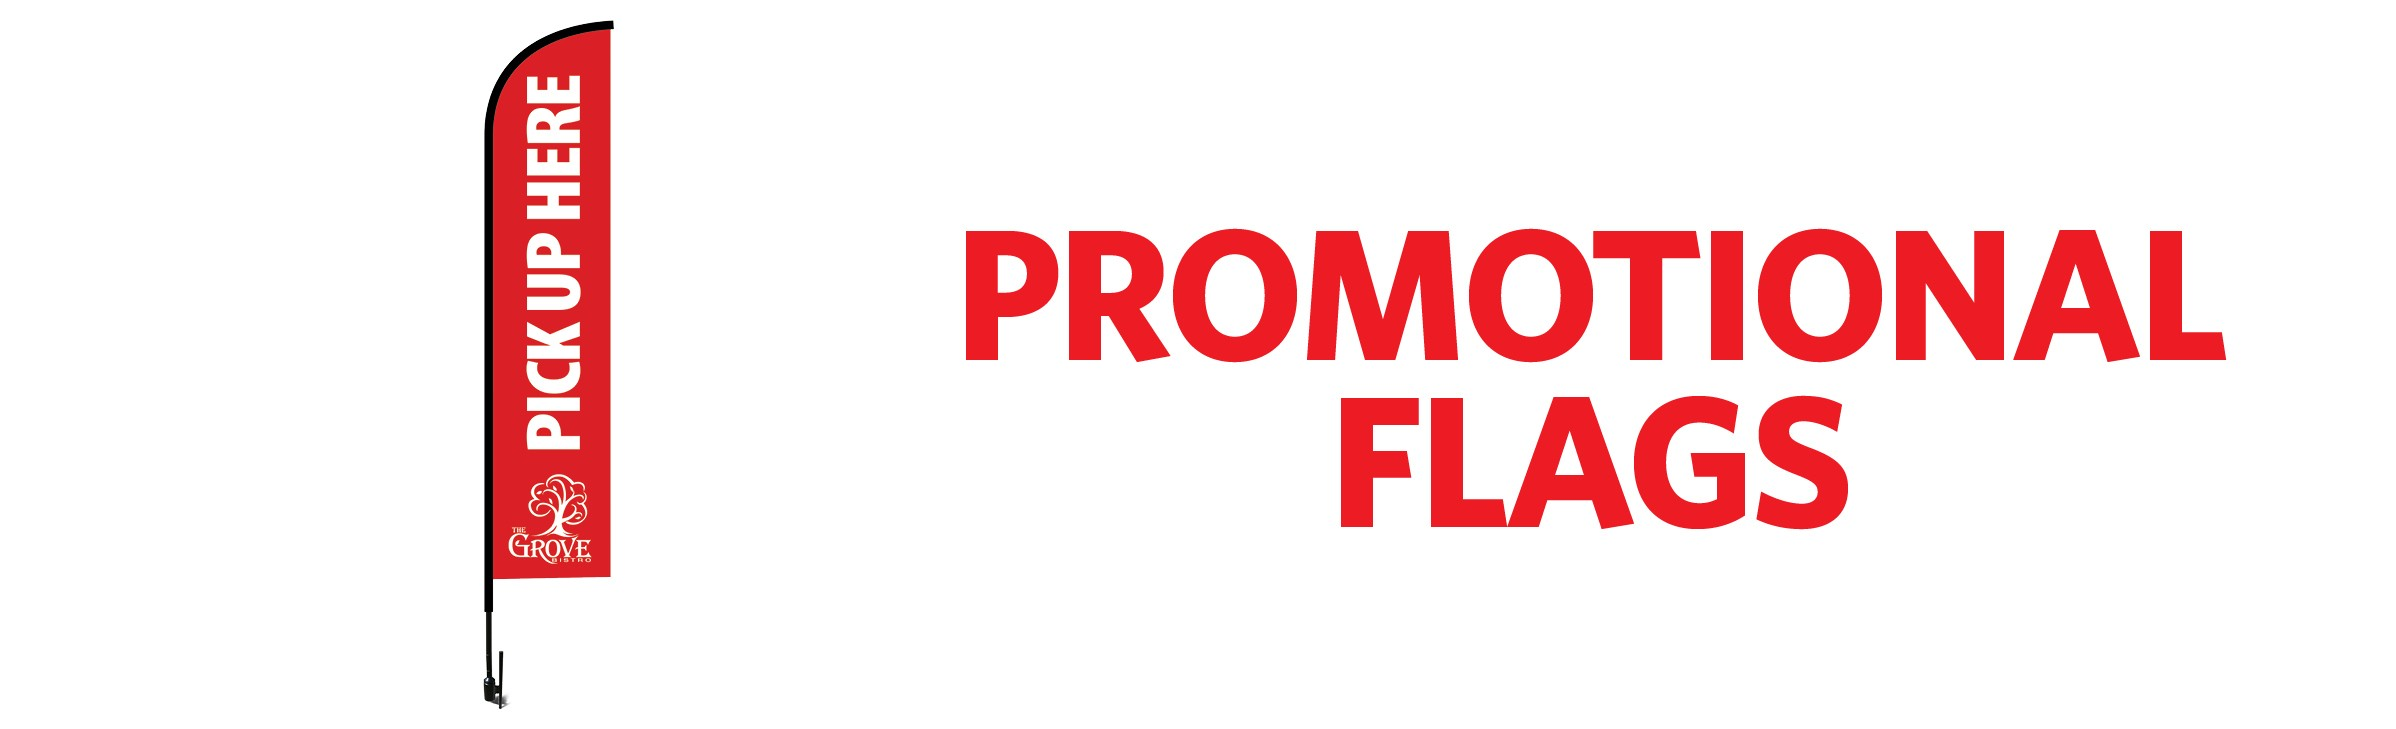 Promotional Flags & Accessories